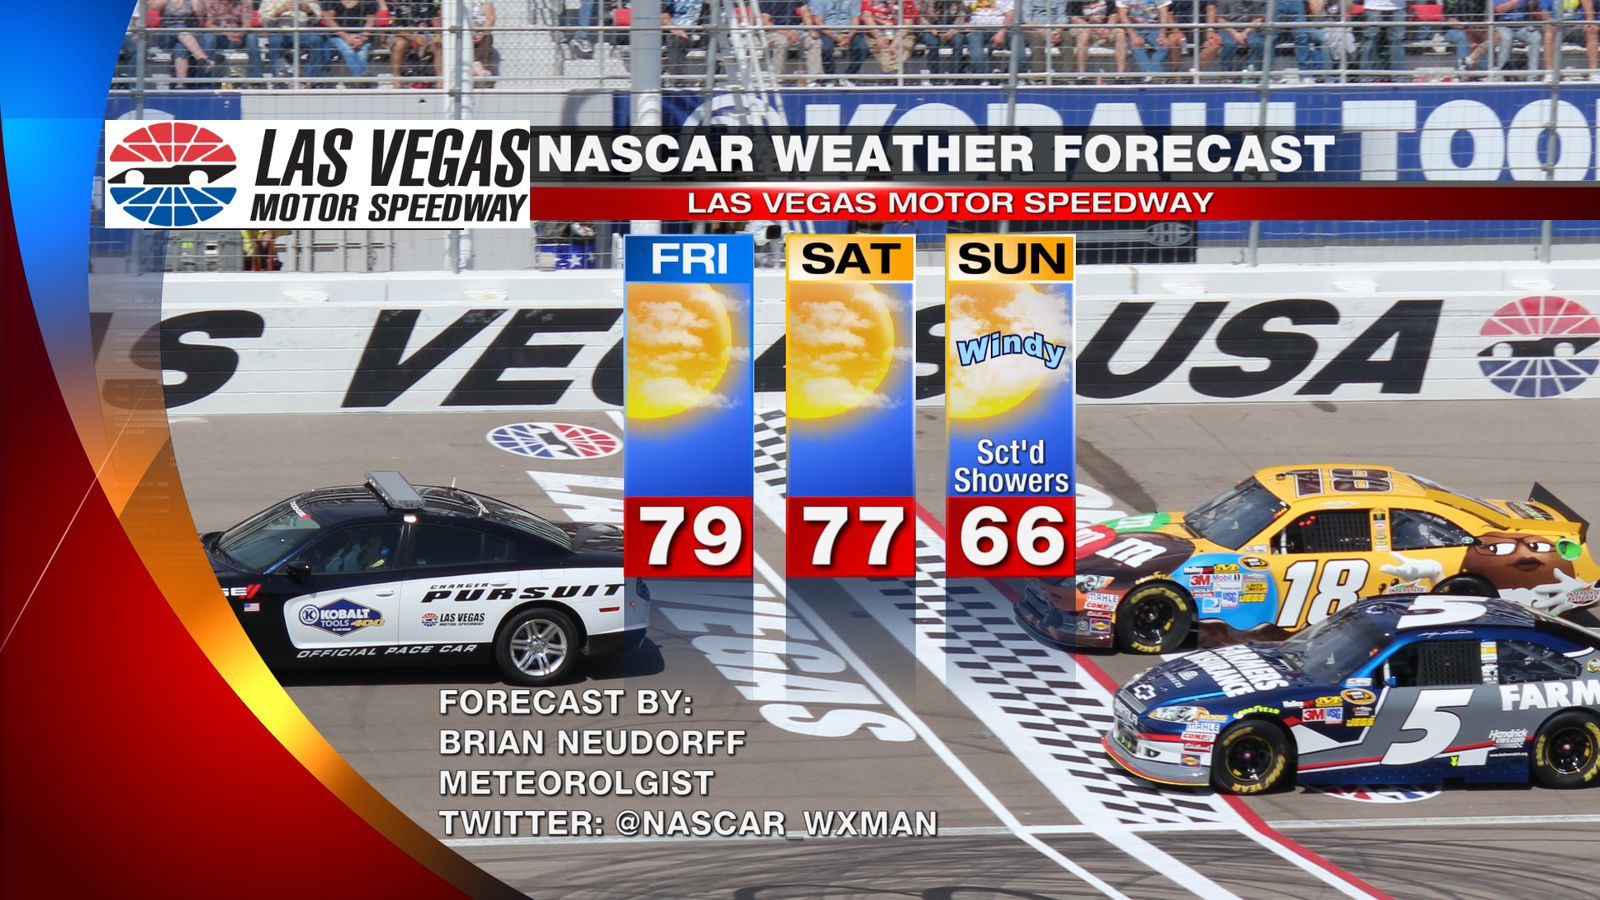 Nascar Weather Forecast For Las Vegas Actually Has Rain In